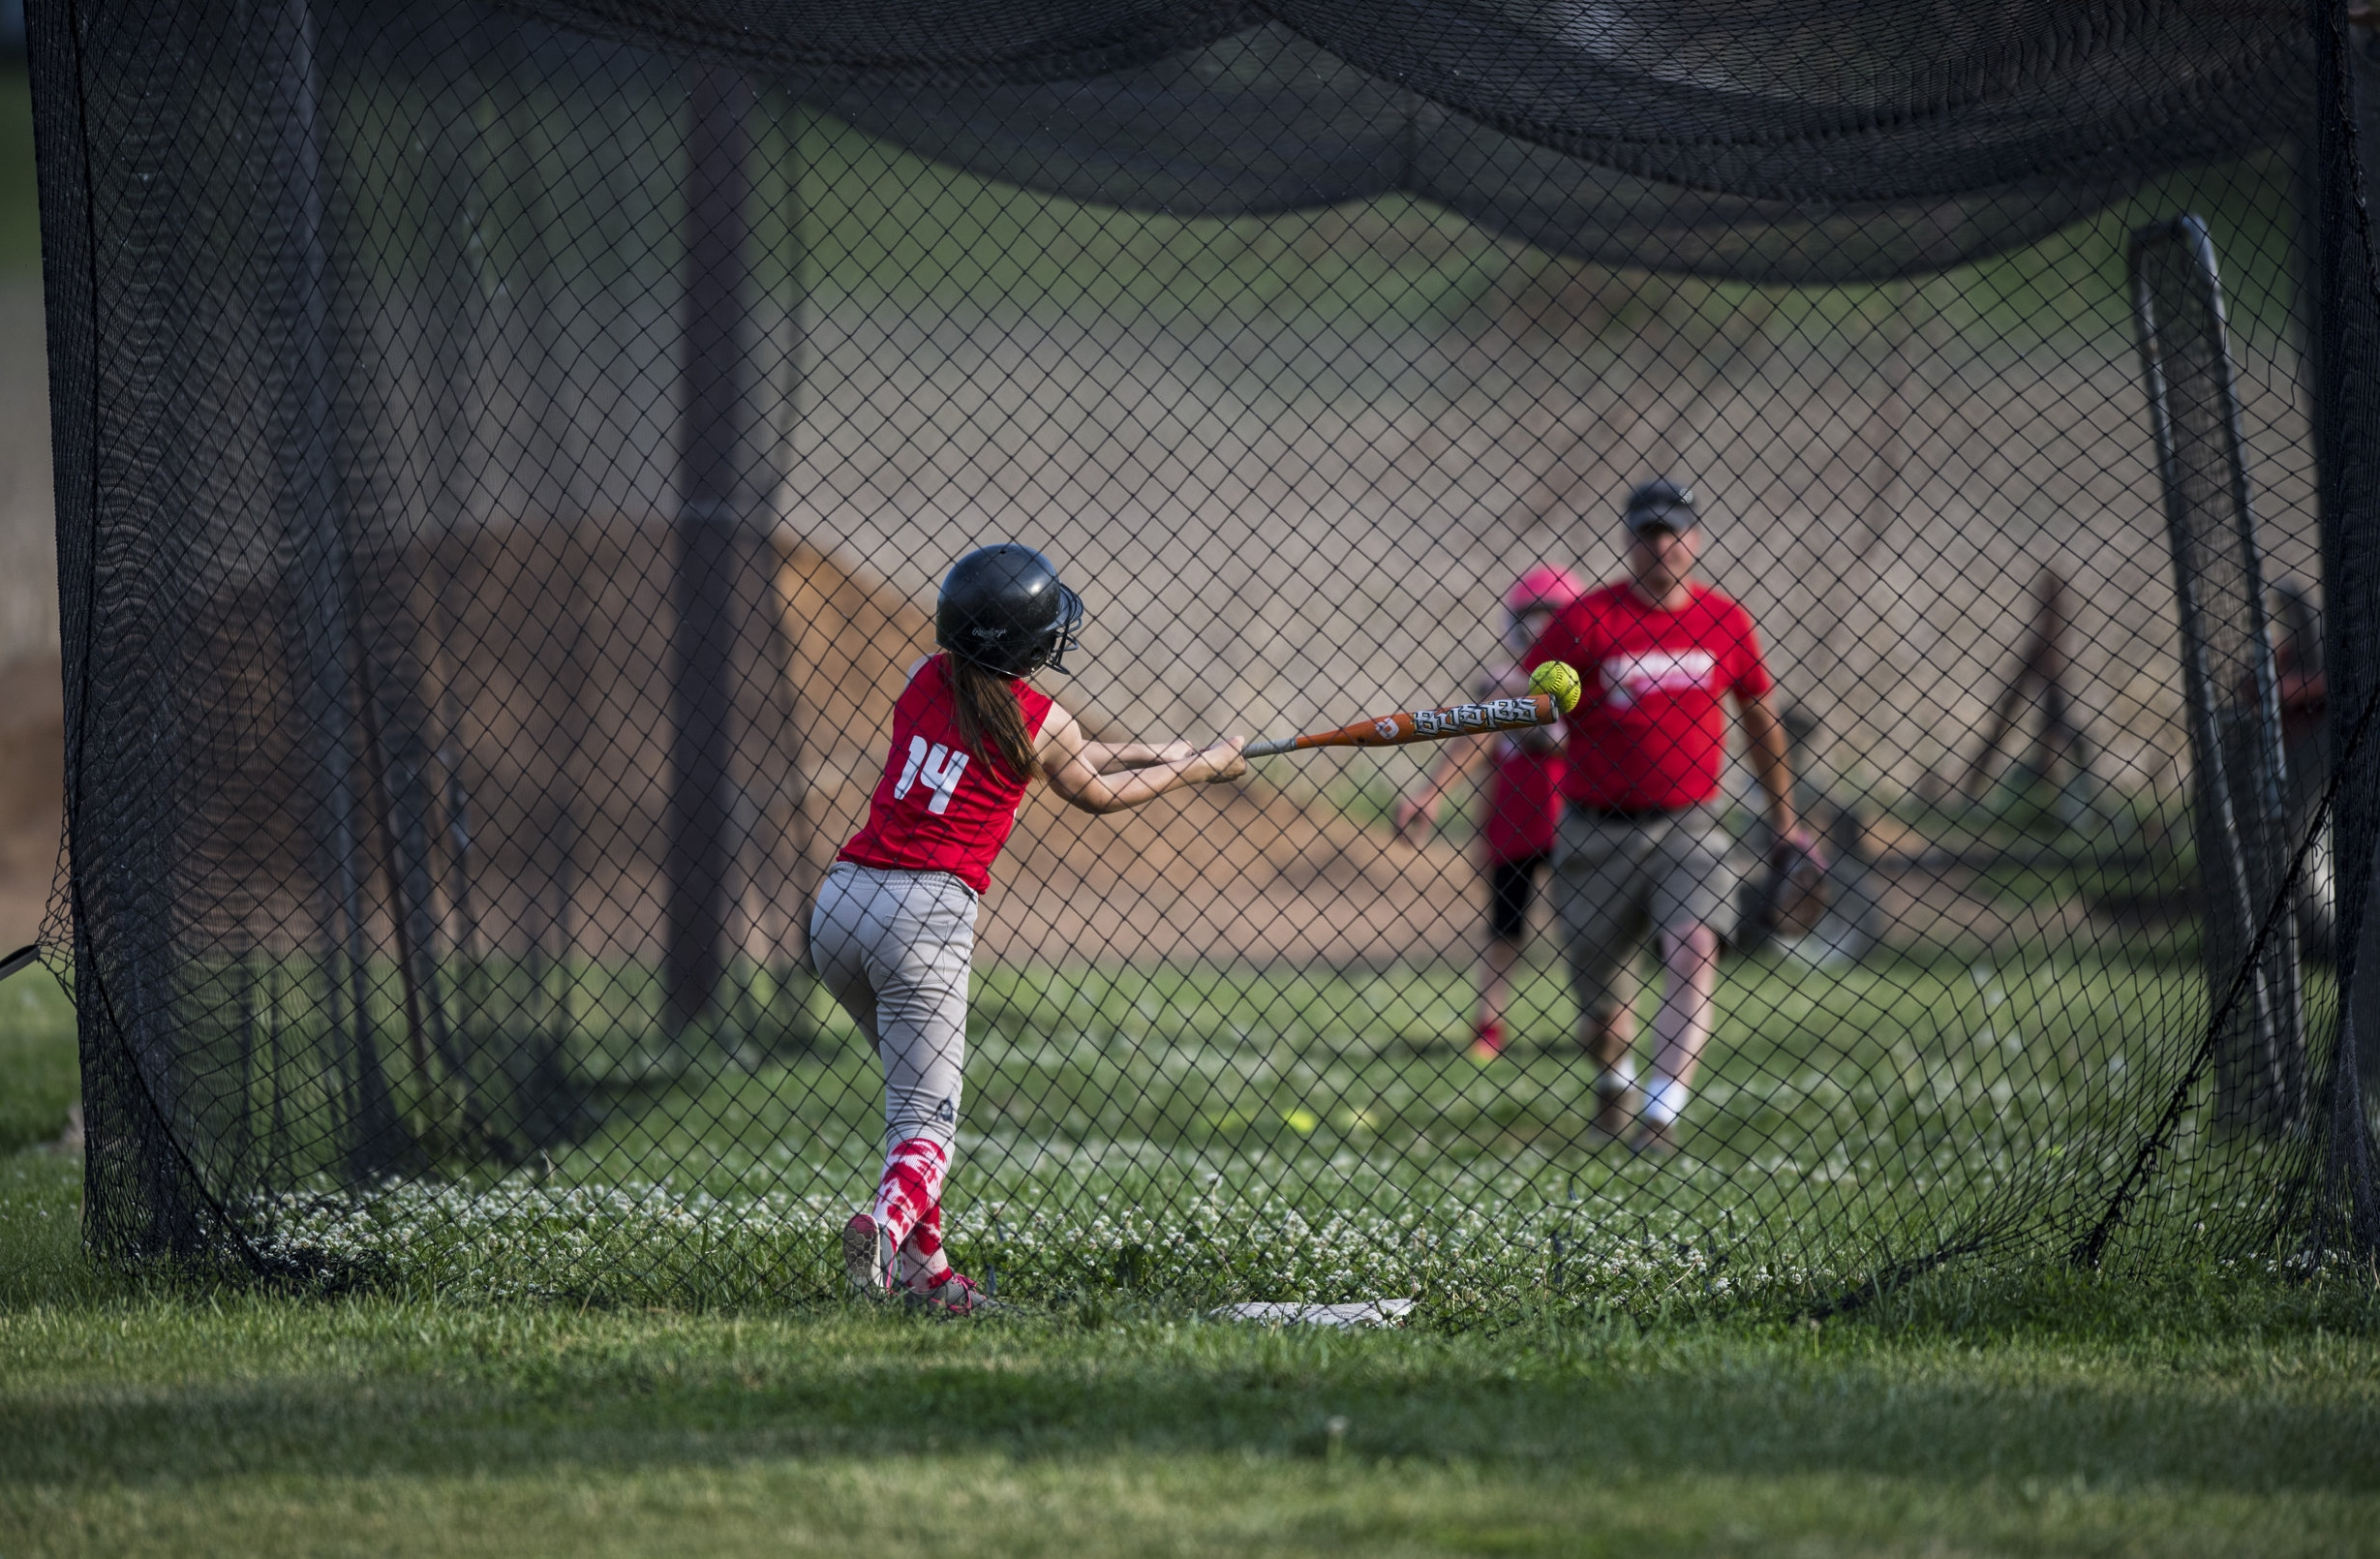 Grandson Timmy Kester pitches a practice ball to great granddaughter Cassidy Bearinger before a softball game.